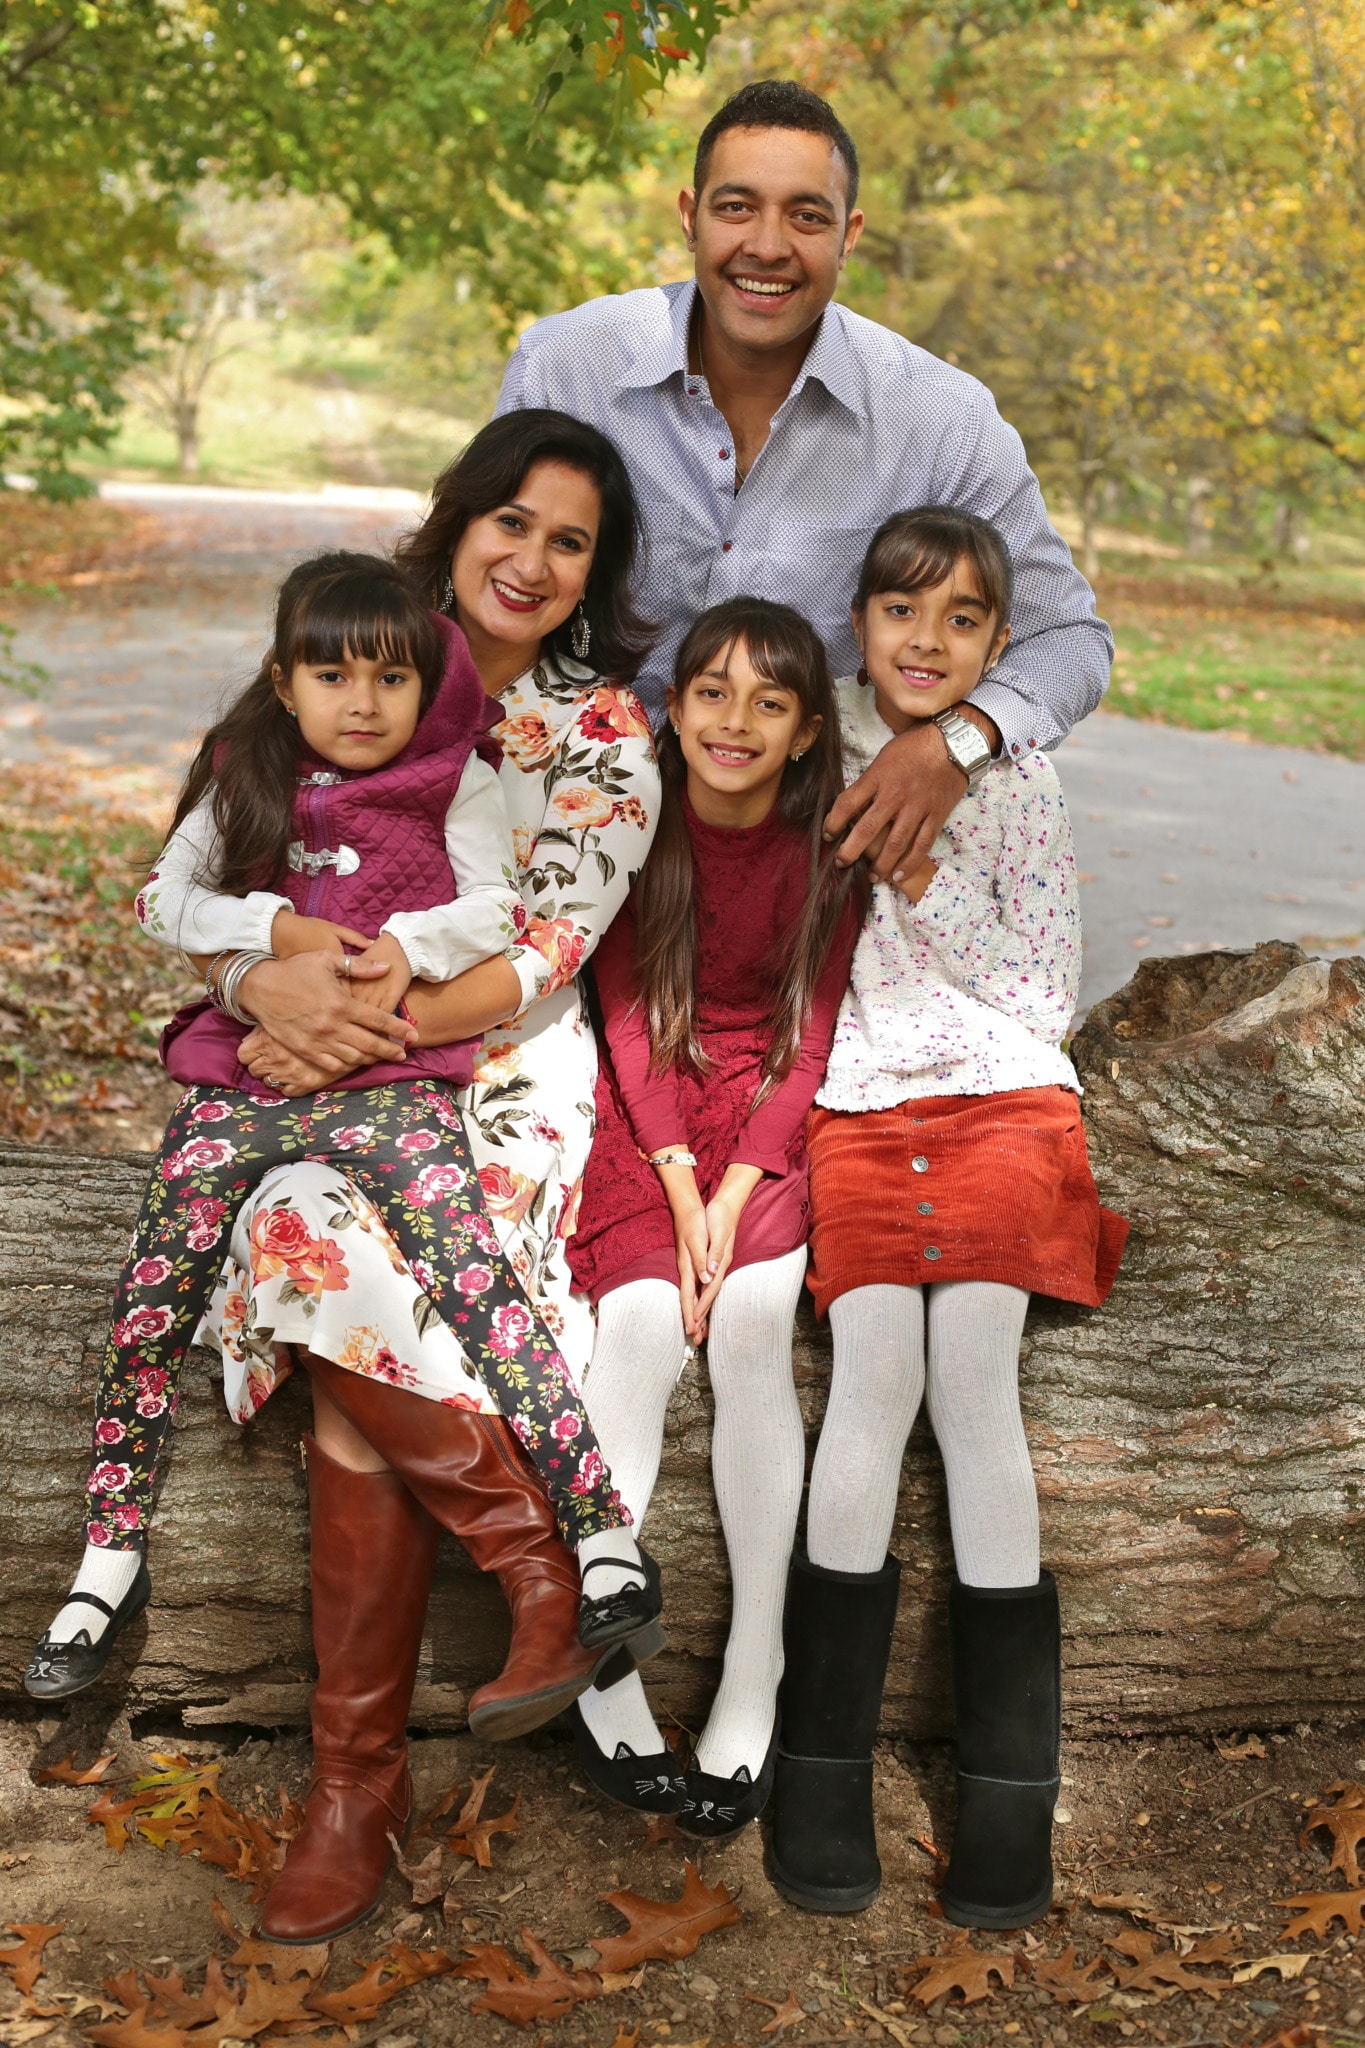 Meenakshi posing with her husband and three young girls in a park, sitting on a tree trunk, with lush green foliage in the background.